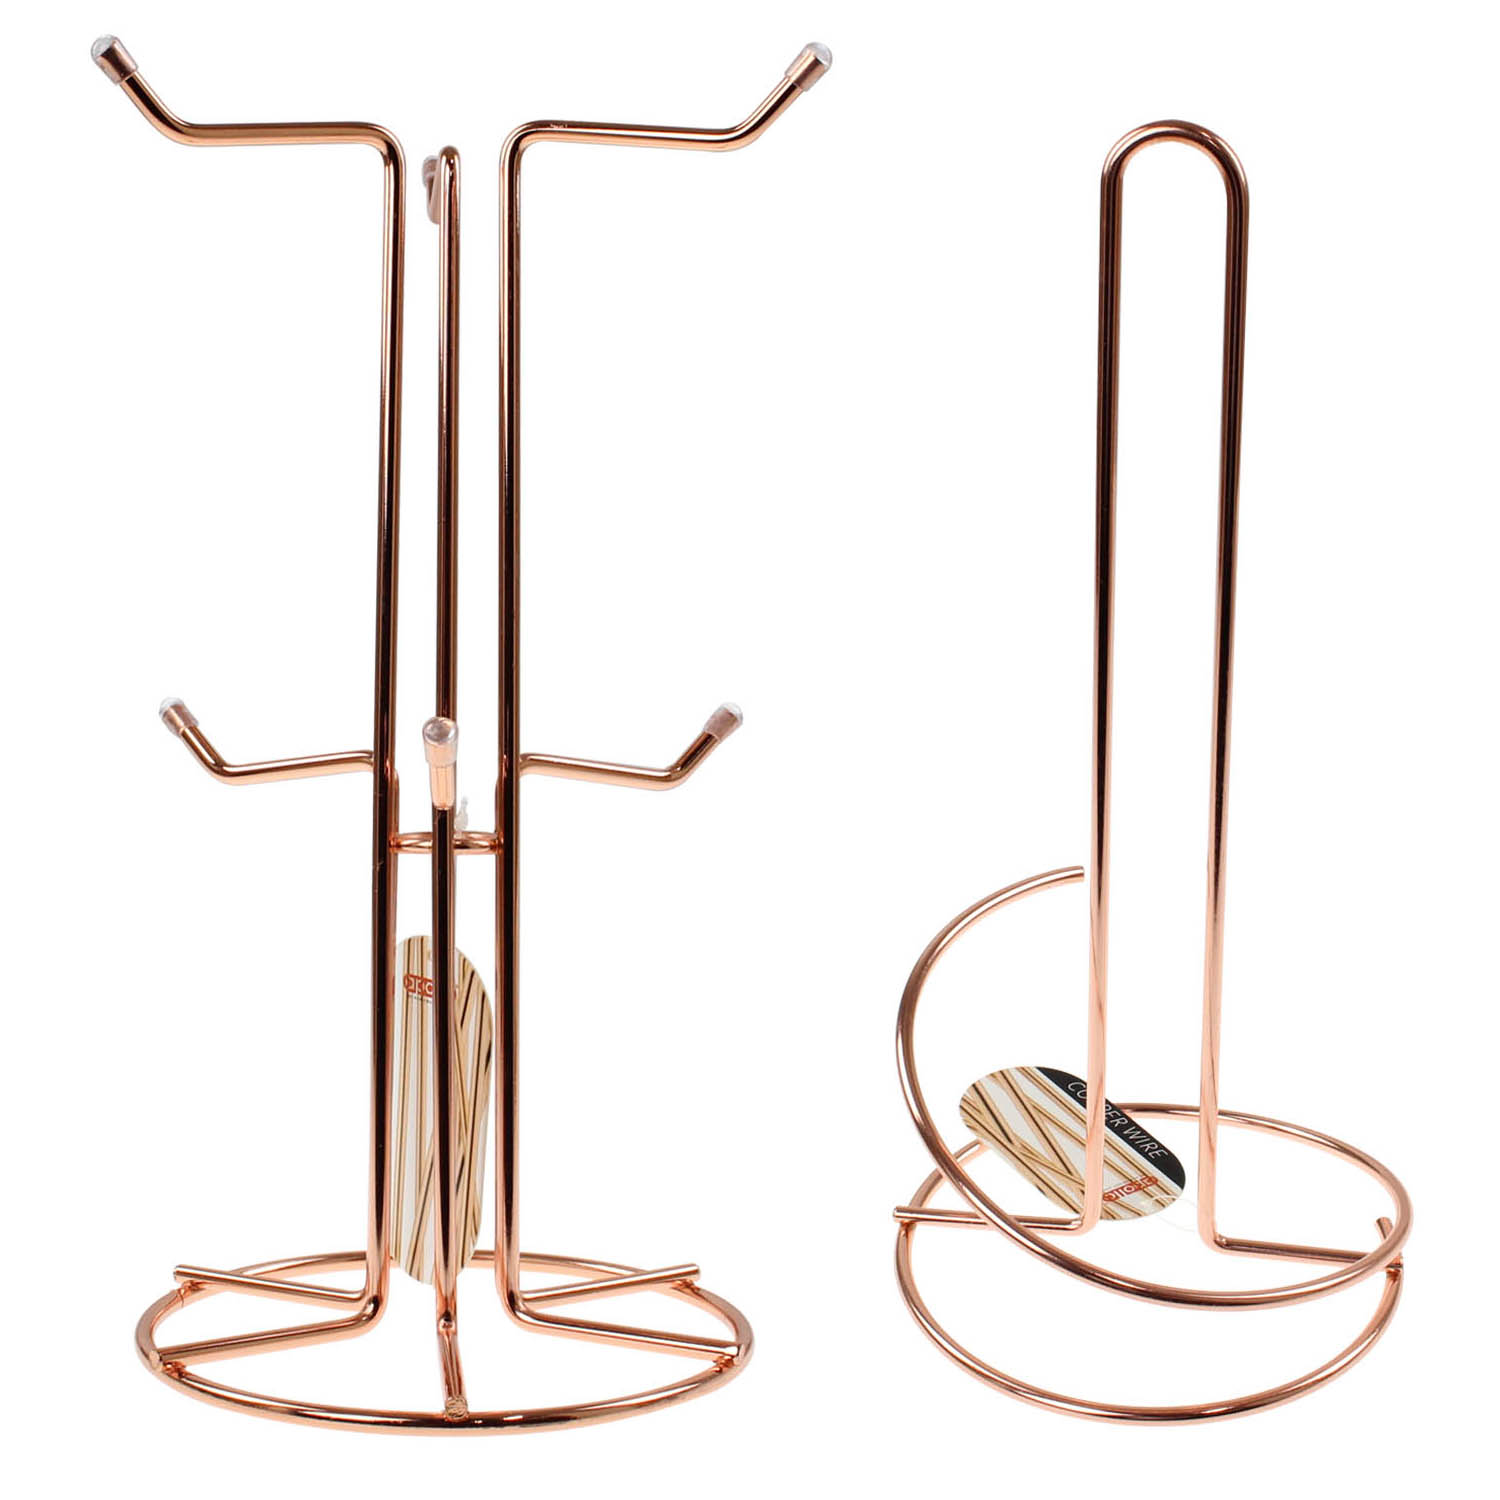 Details about Copper Mug Tree 6 Cups Holder and Kitchen Paper Roll Towel Pole Rack Dispenser